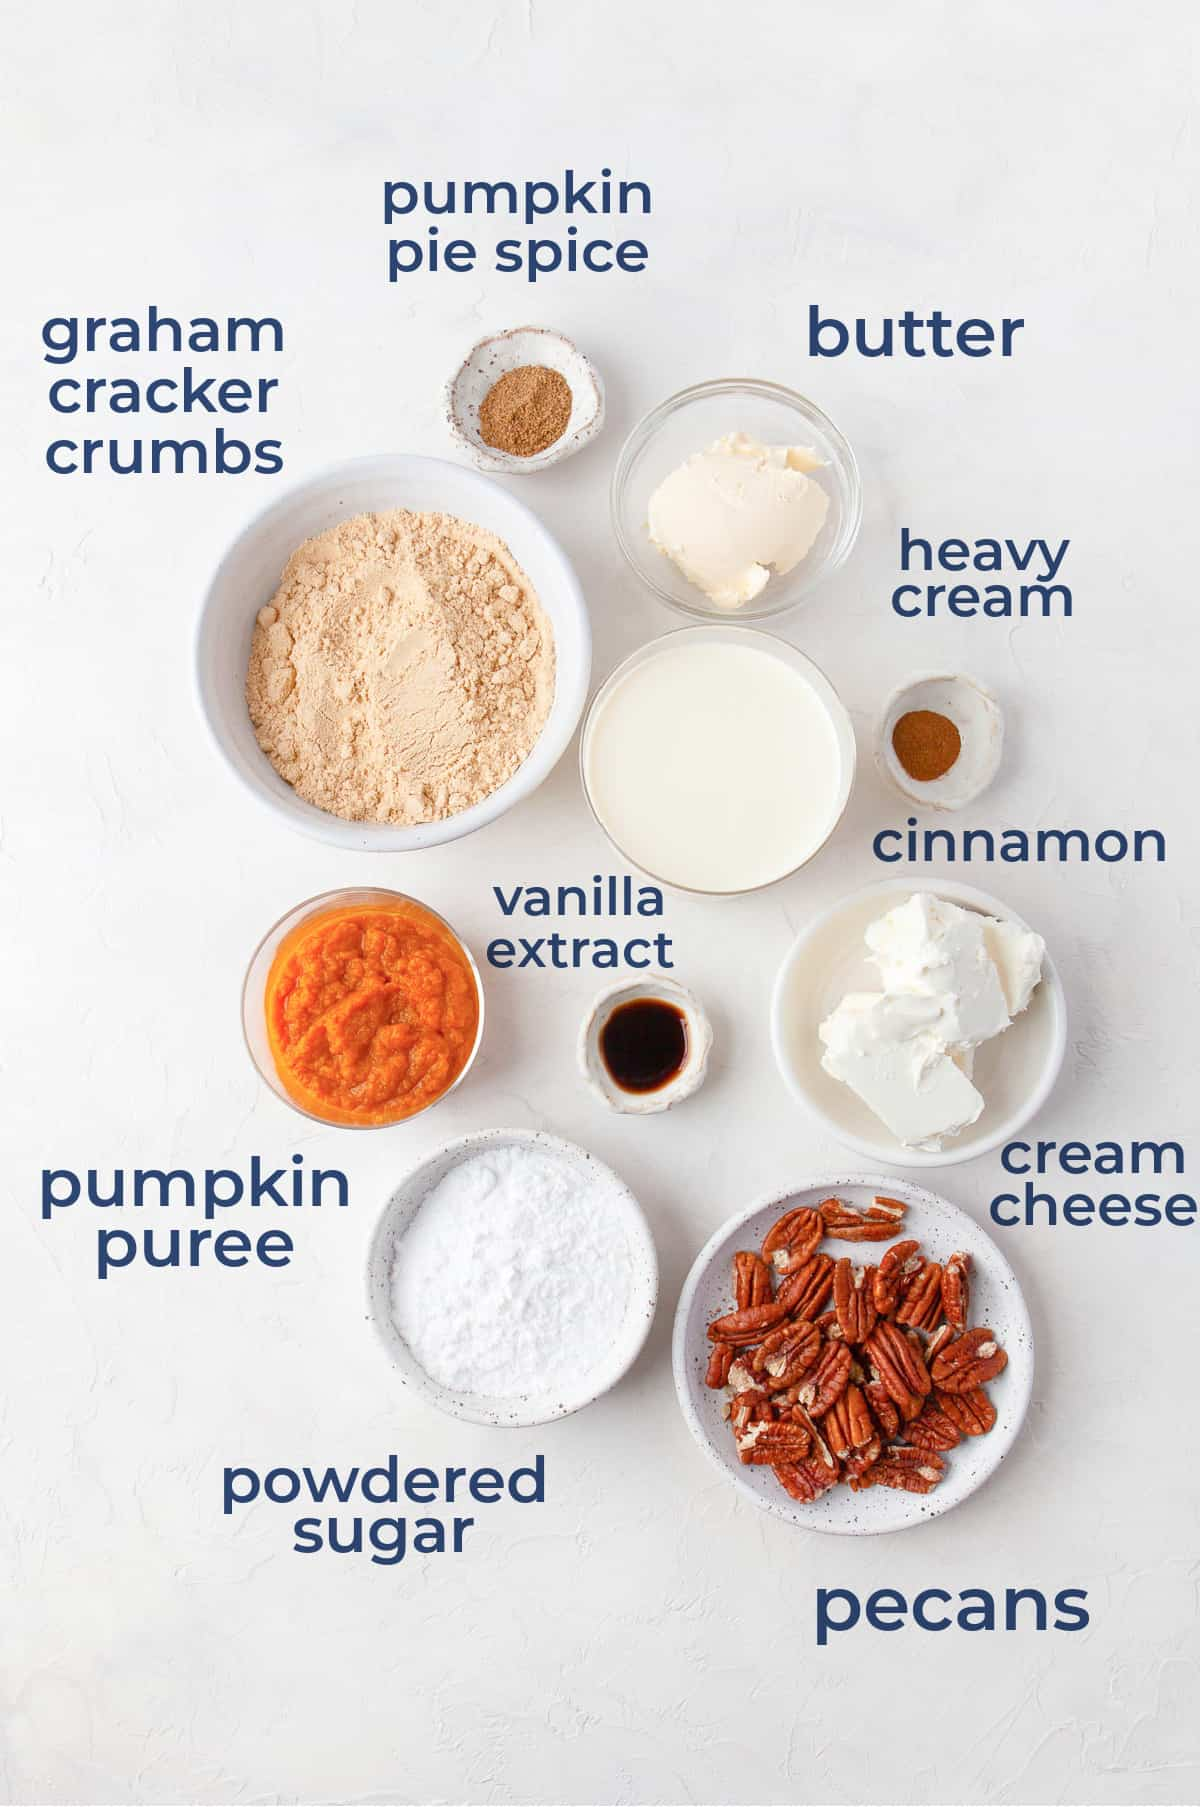 Ingredients laid out to make a homemade pumpkin spice mousse